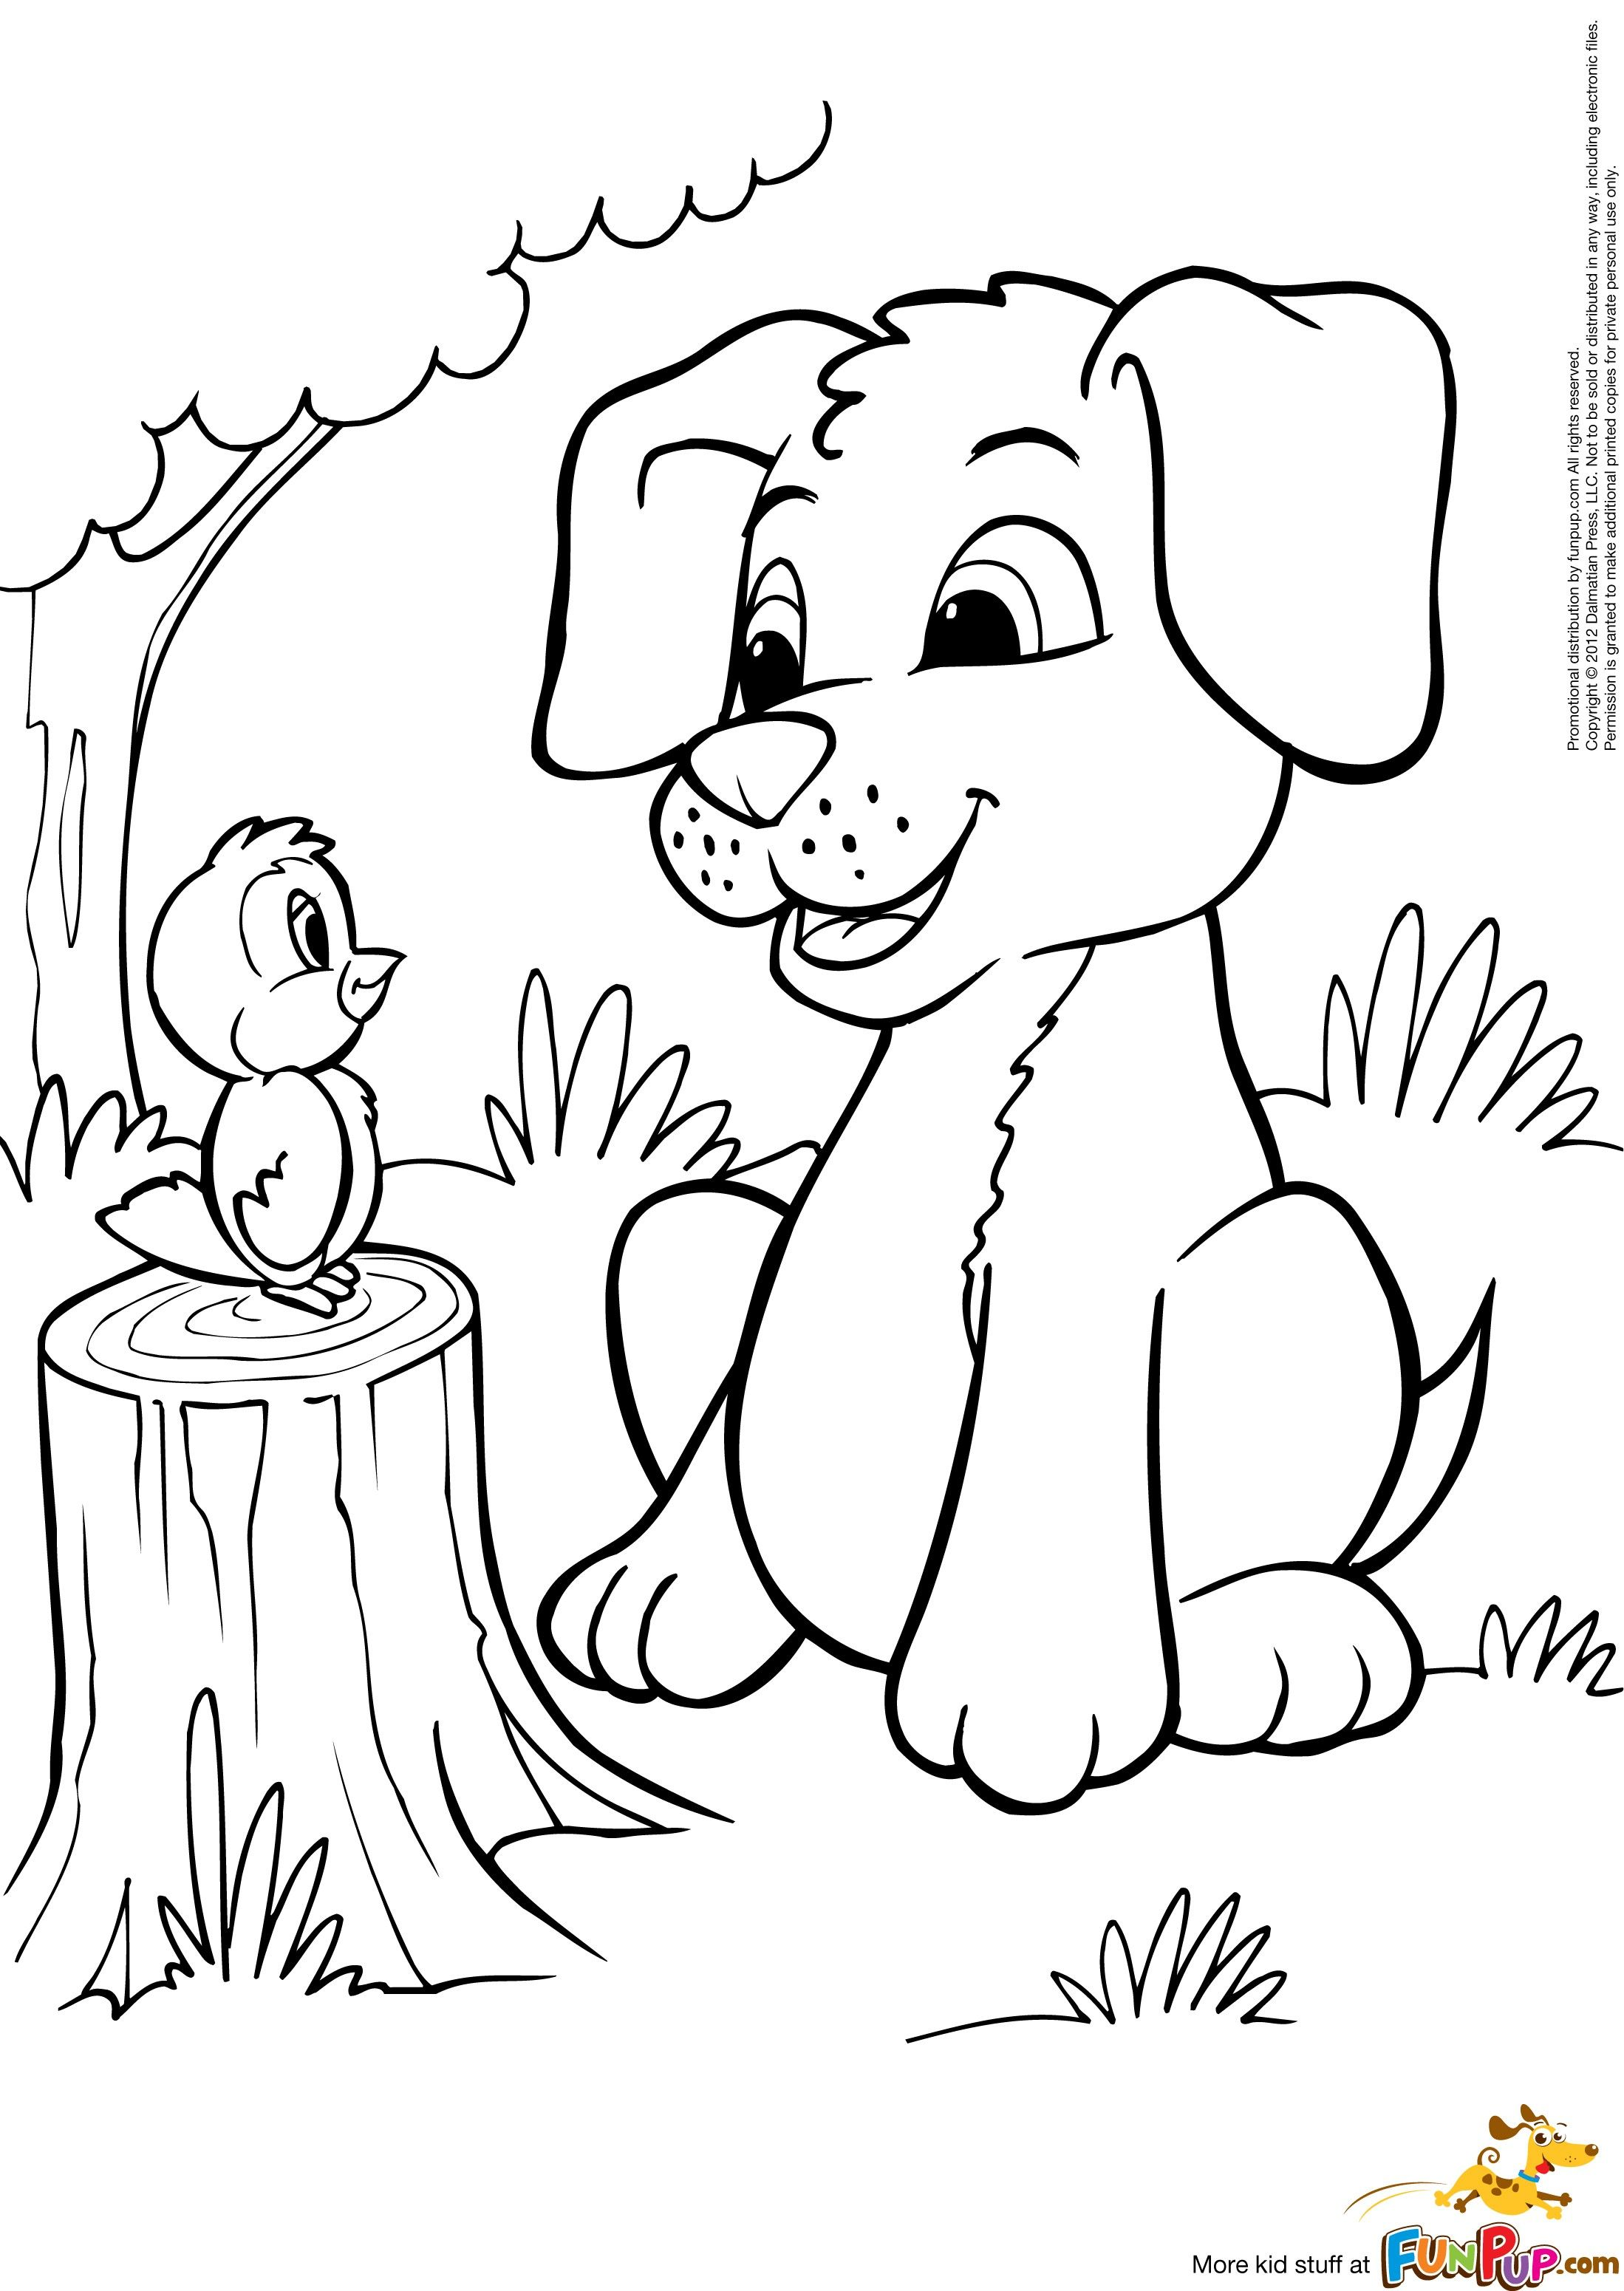 Photo Puppies Colouring Pages Images Puppy coloring